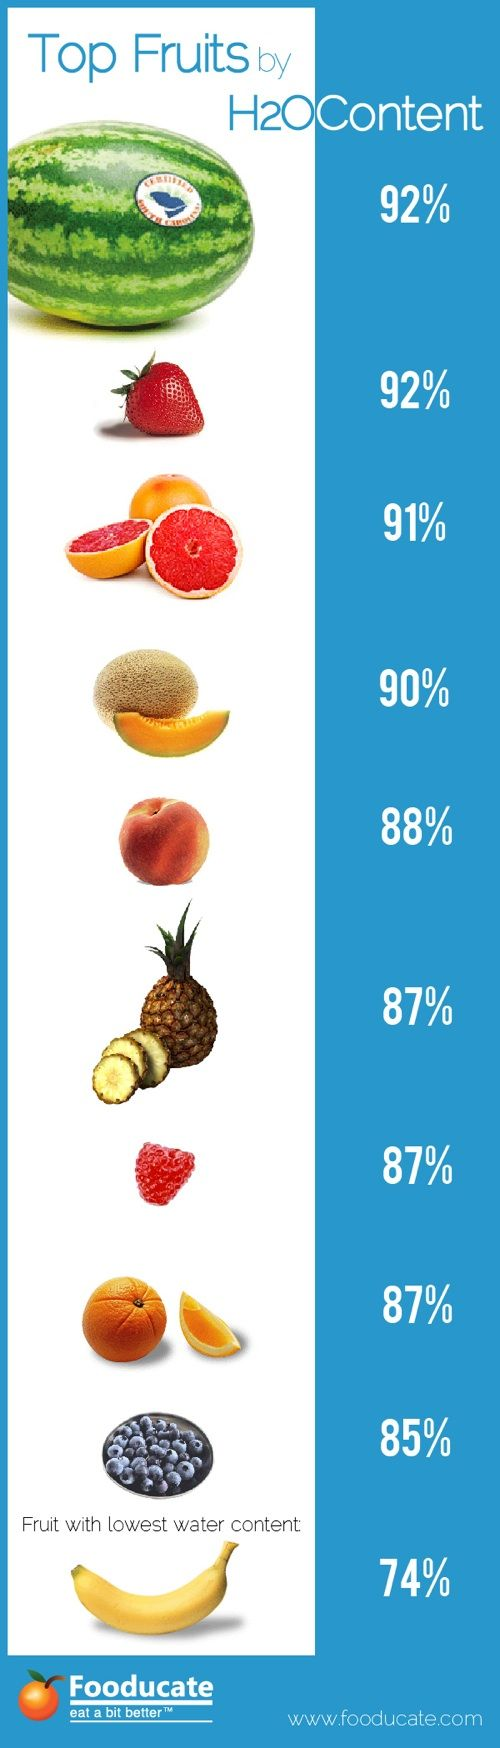 If you are one of those people that absolutely hates trying to get in eight glasses of water a day, good news for you! Many of the fruits you already enjoy are very high in water and count towards your daily total, with the added bonus of antioxidants and extra fiber. Another great reason to enjoy delicious fruit!